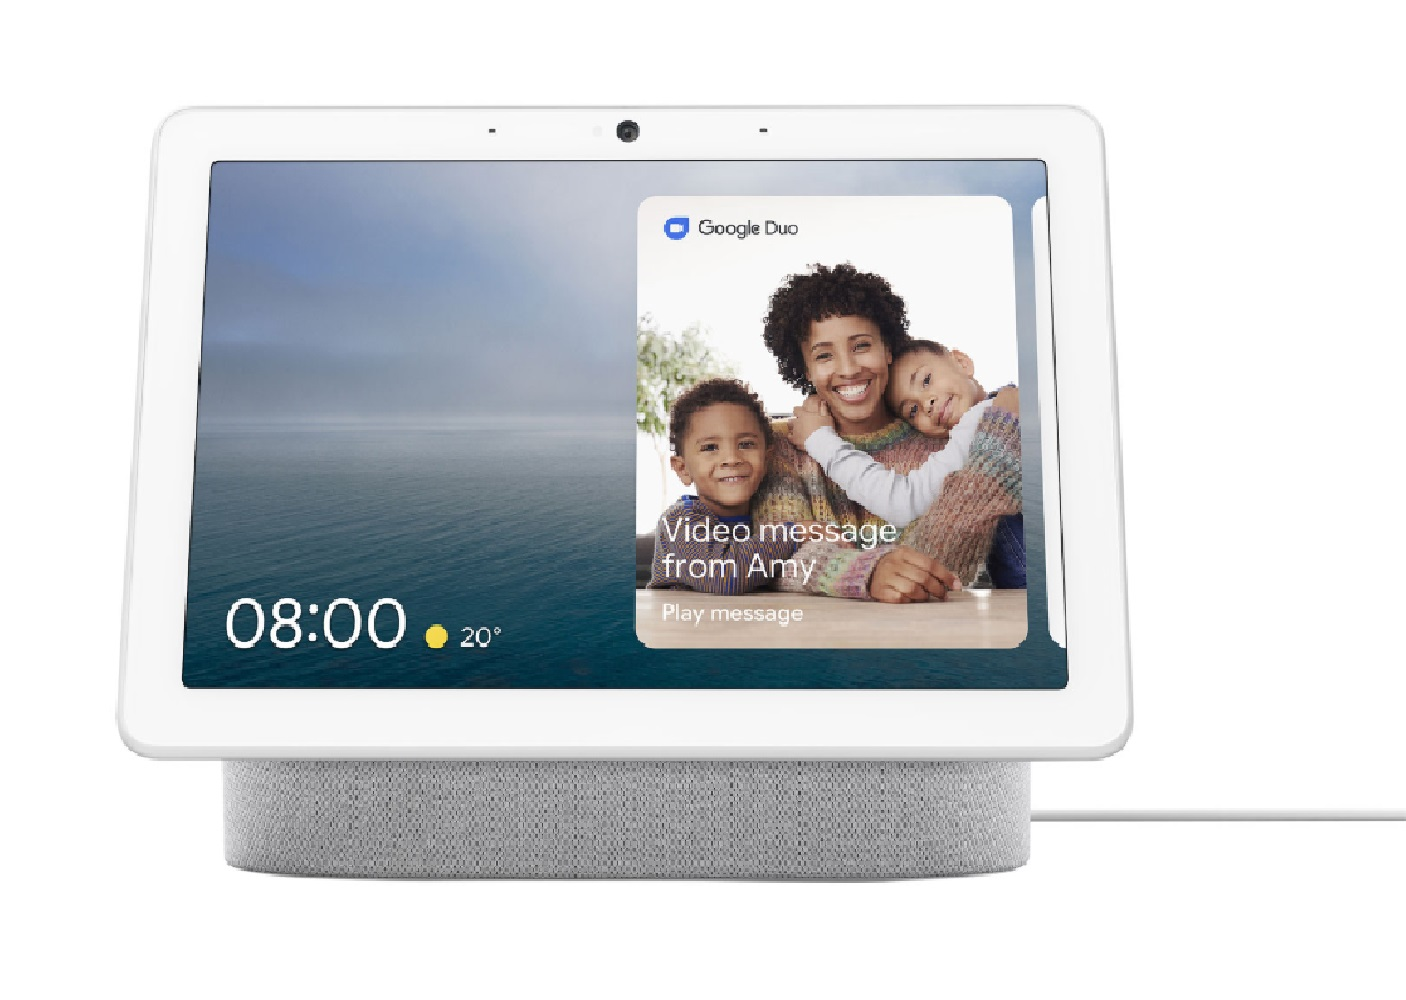 image of the Google Nest Hub Max displaying a video chat with a family